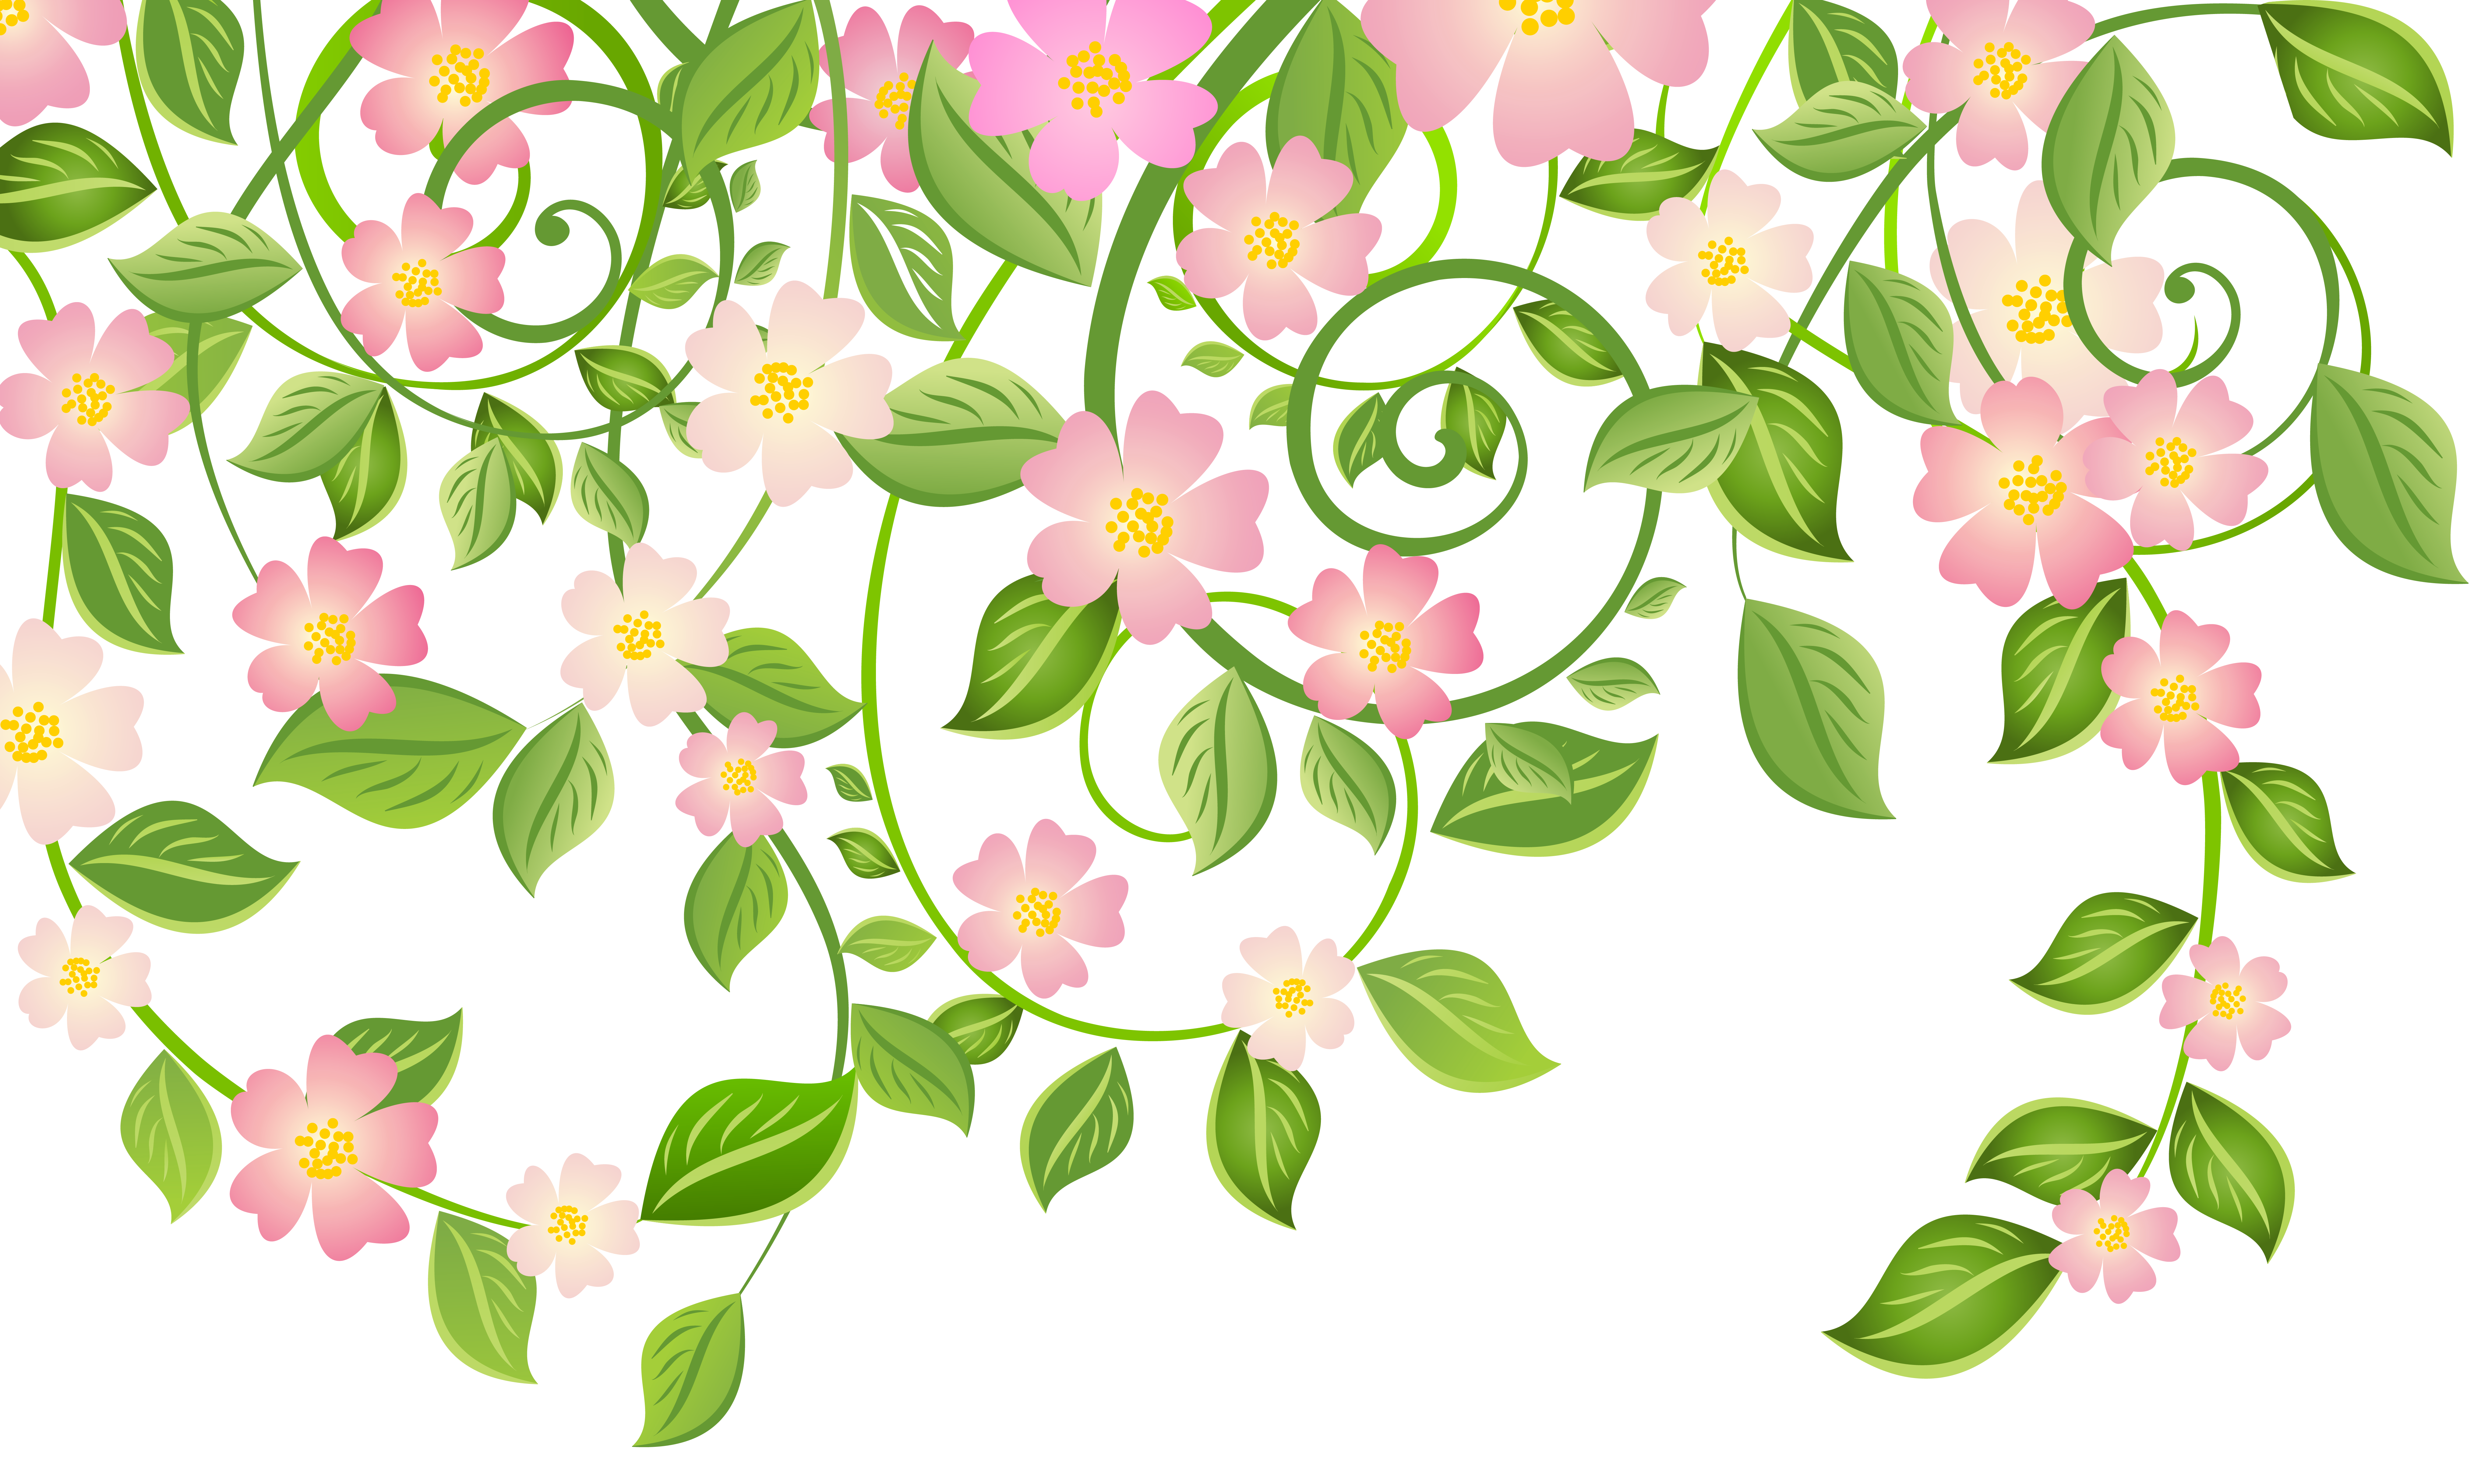 Spring art png. Blossom decoration with leaves